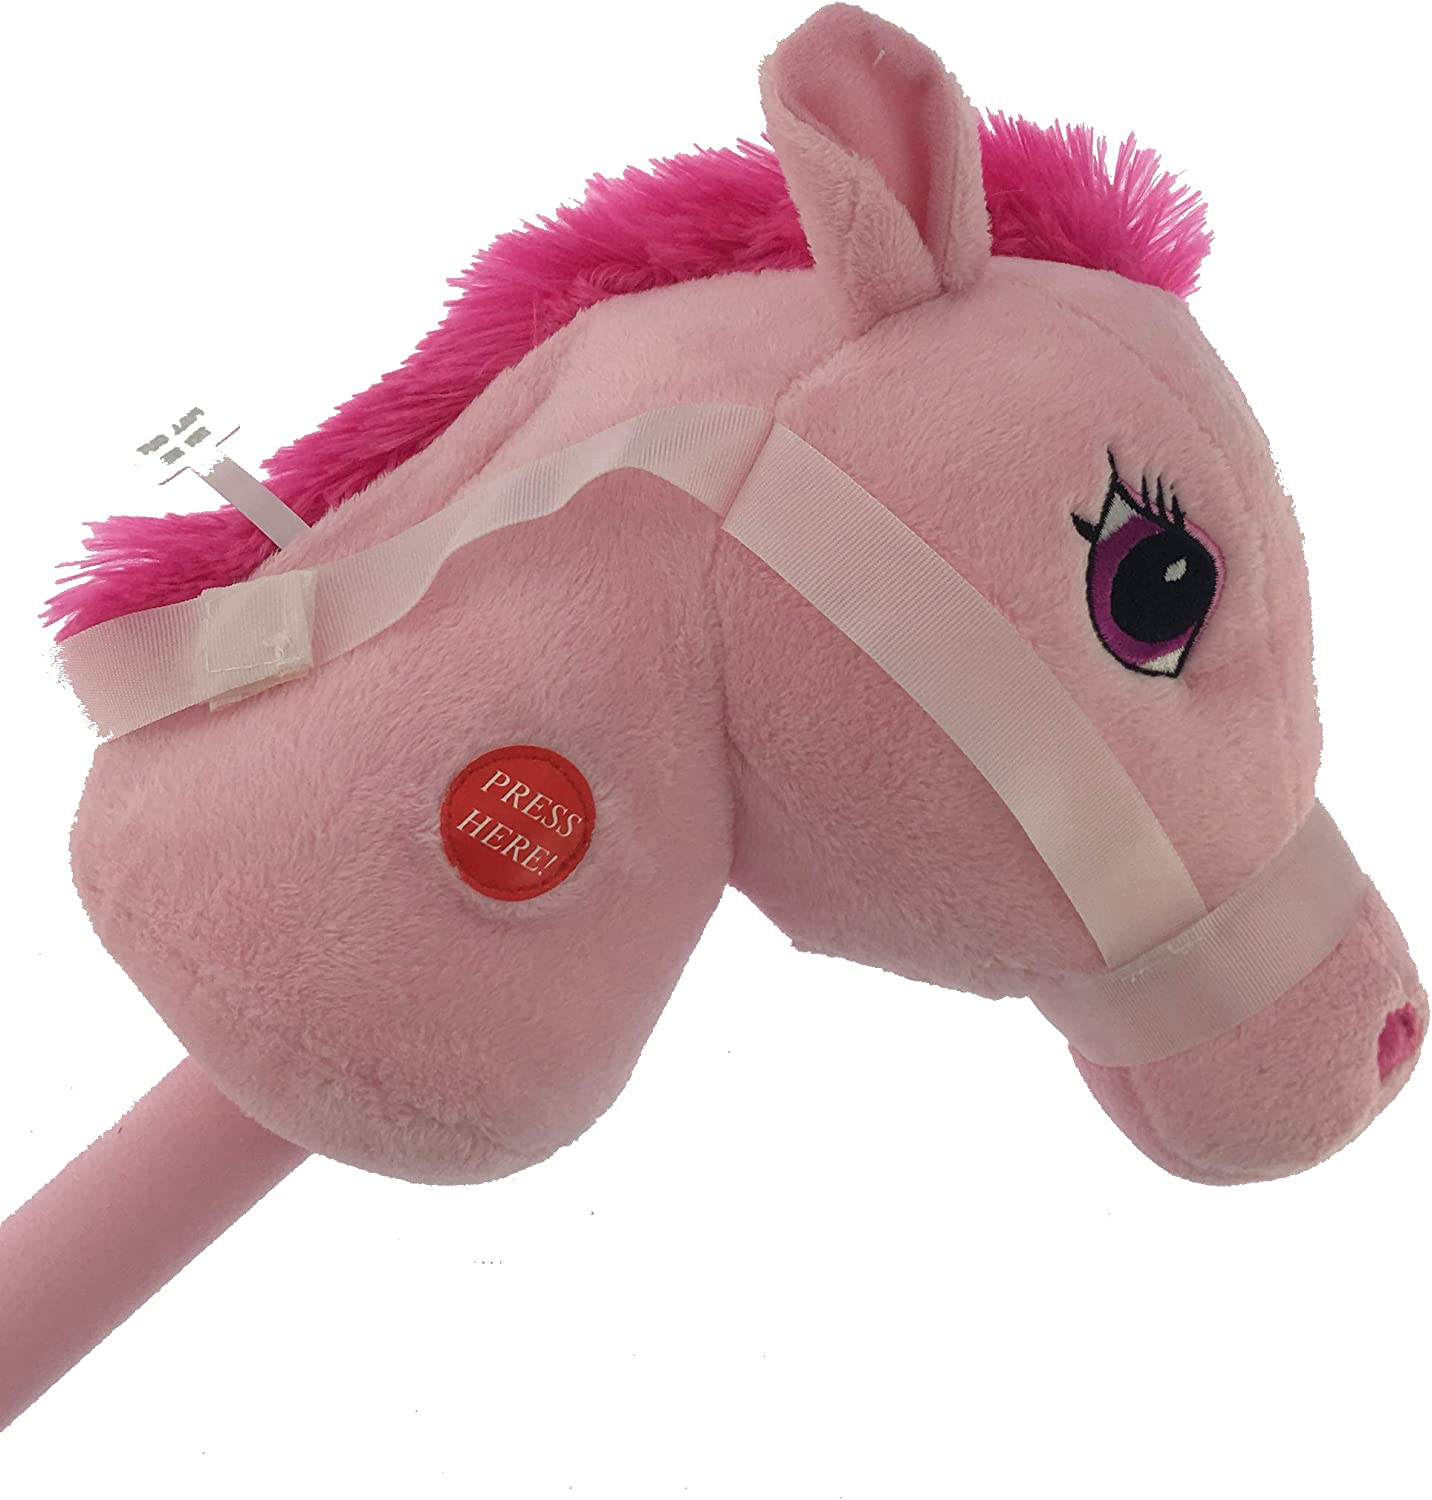 29 Stick Horse Giddy-up and Go Pony w  Real Sound - Pink